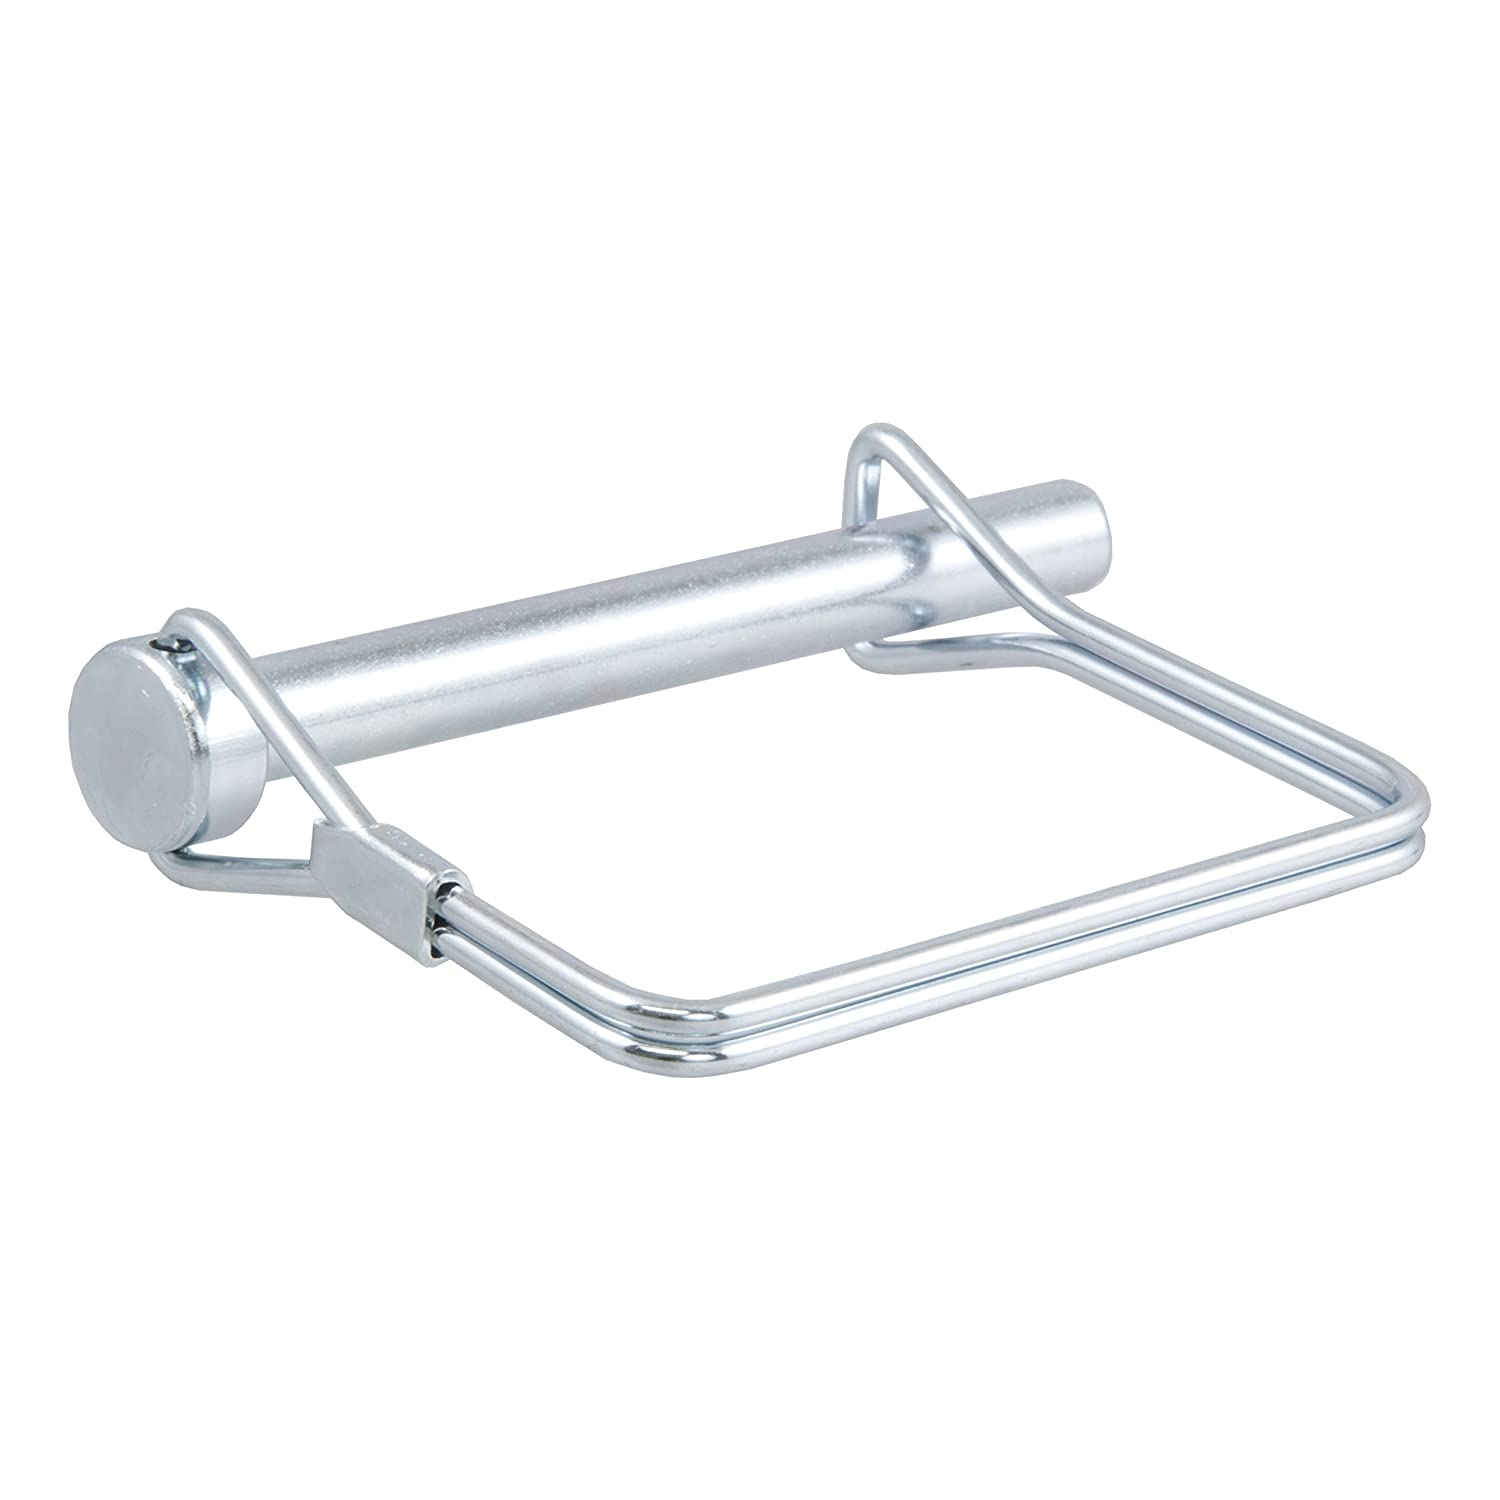 Safety Pins Amazon 5/16 in Coupler Safety Pin